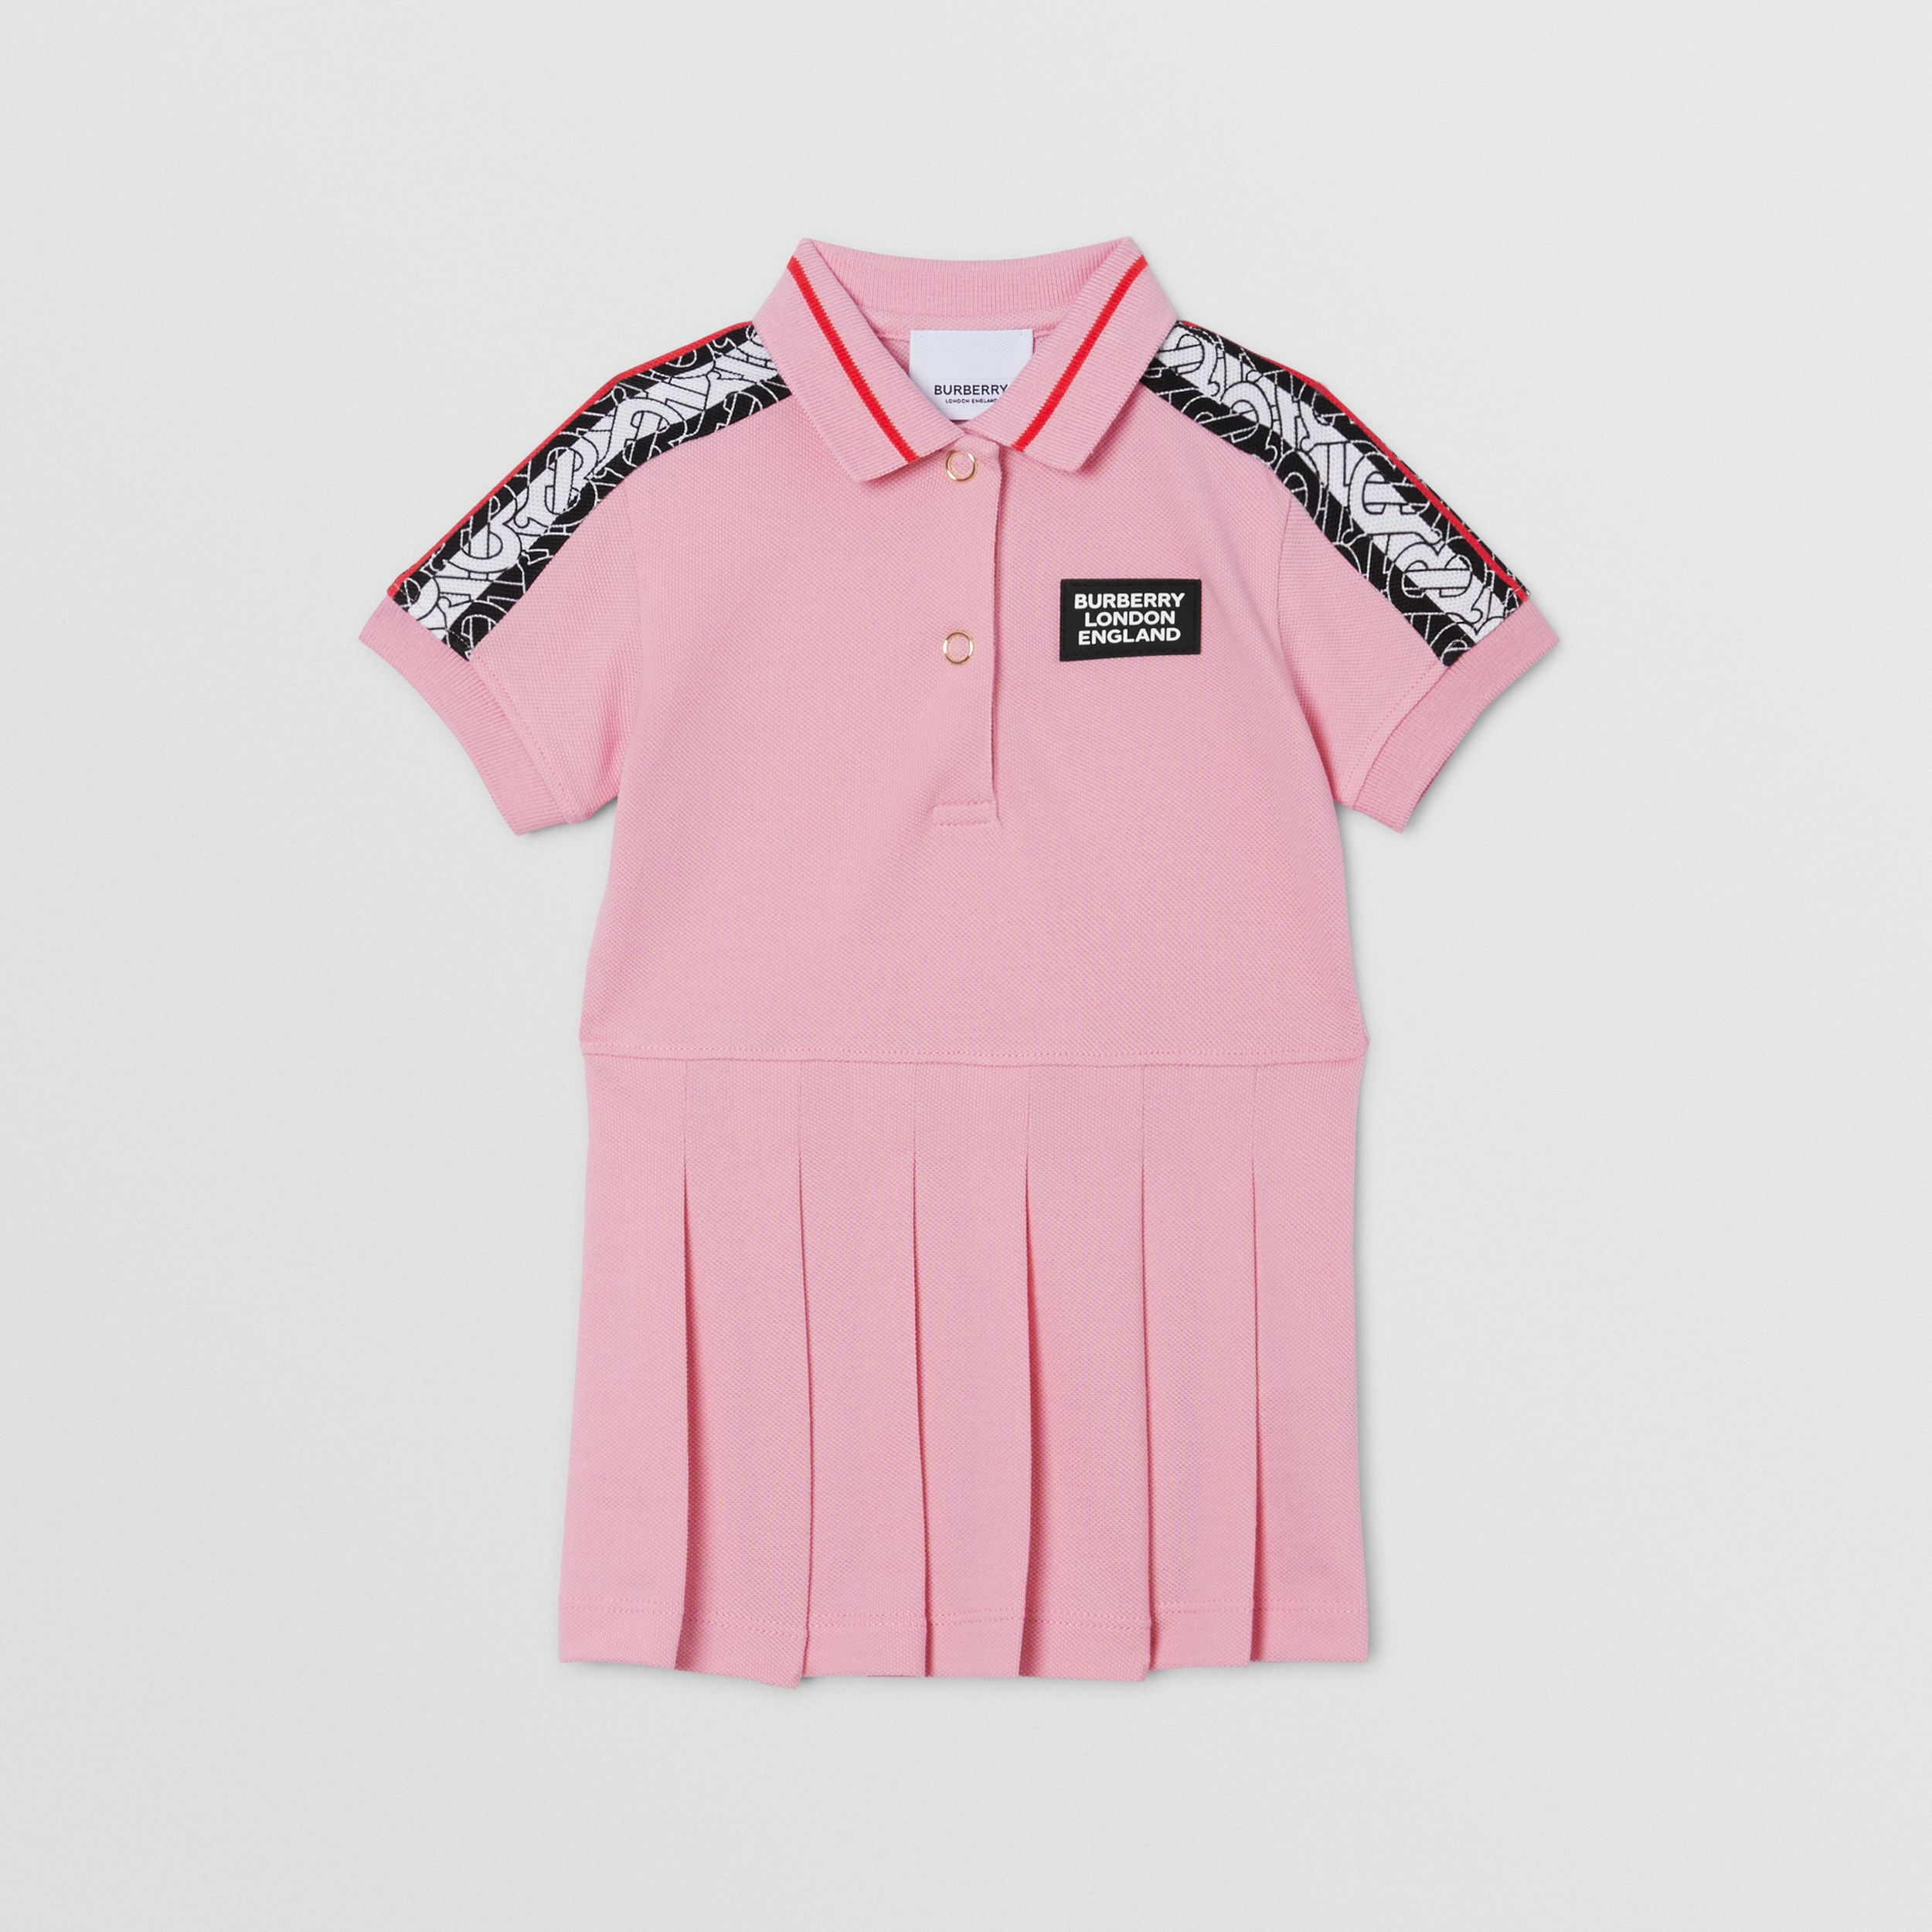 Monogram Stripe Print Cotton Piqué Polo Shirt Dress in Candy Pink - Children | Burberry - 1